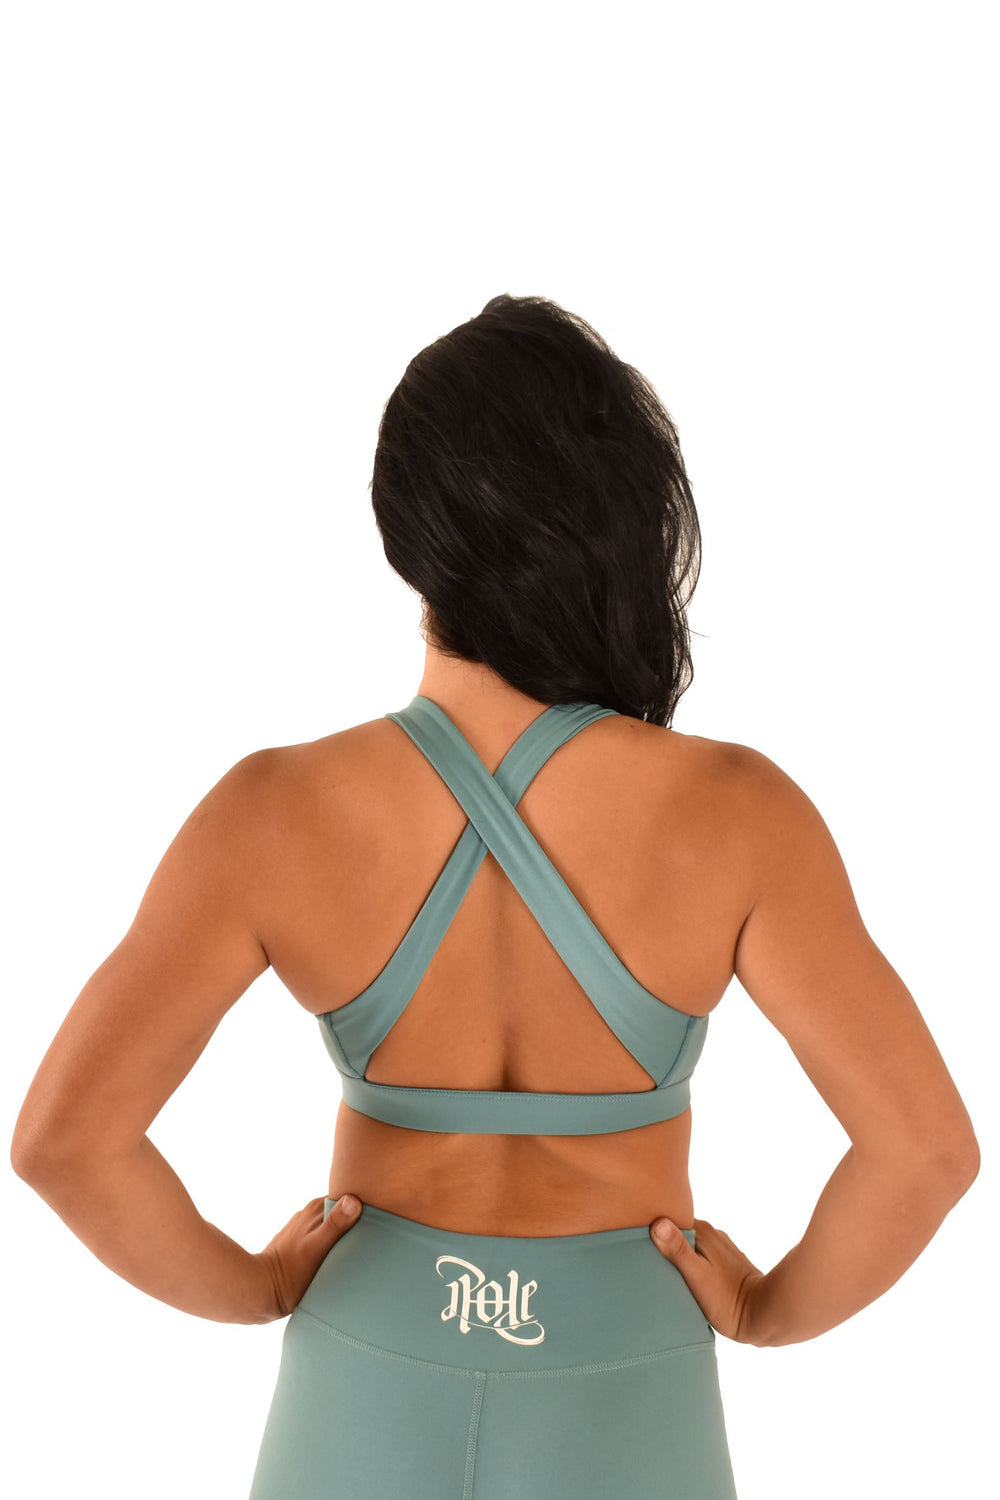 OFF THE POLE Signature Sports Bra - Teal